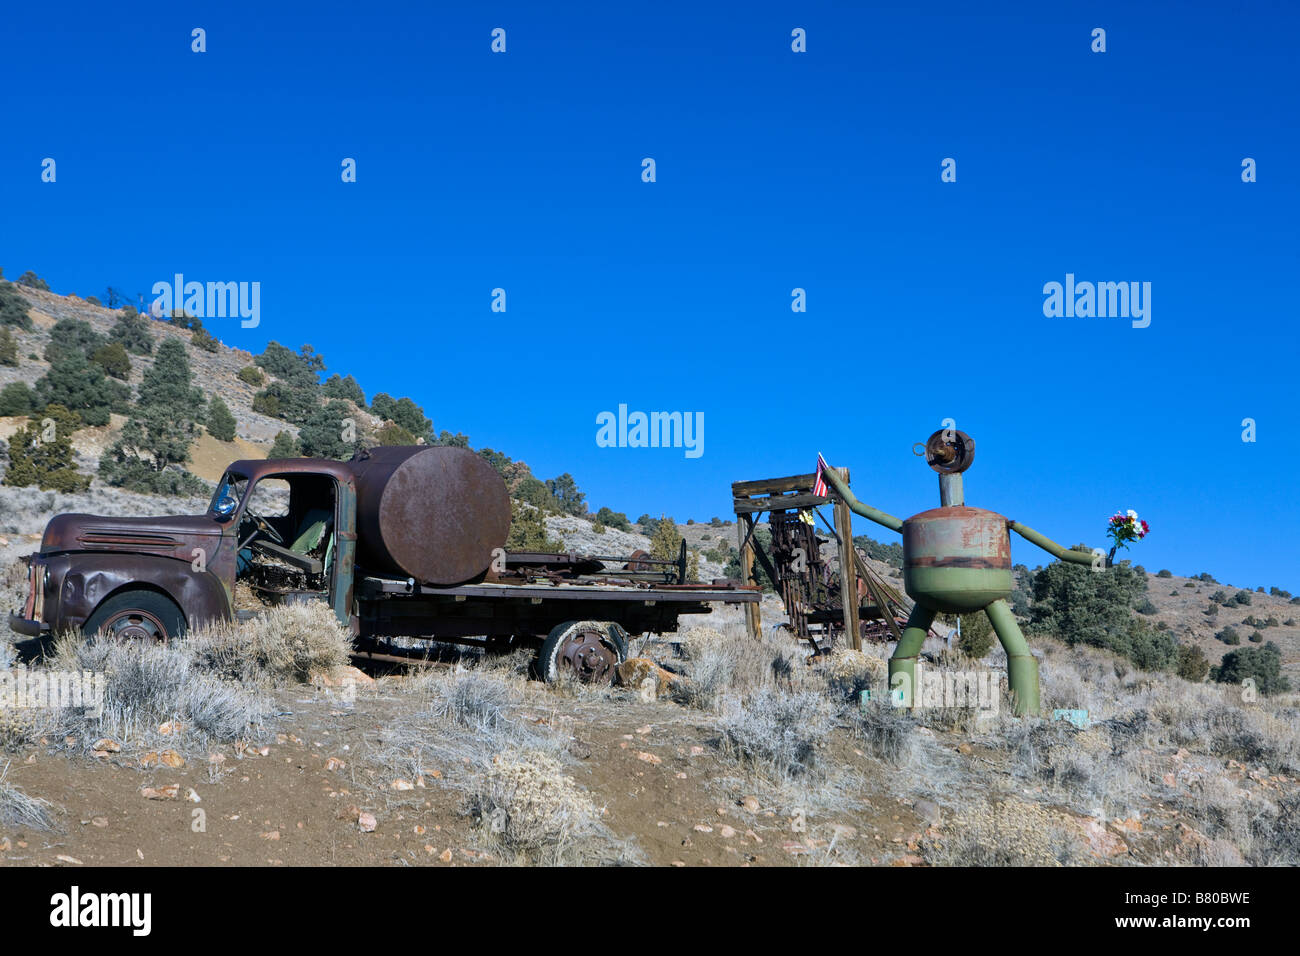 A rusted tanker truck and sculptures made from automobile parts along a hill side south of Virginia City Nevada Stock Photo